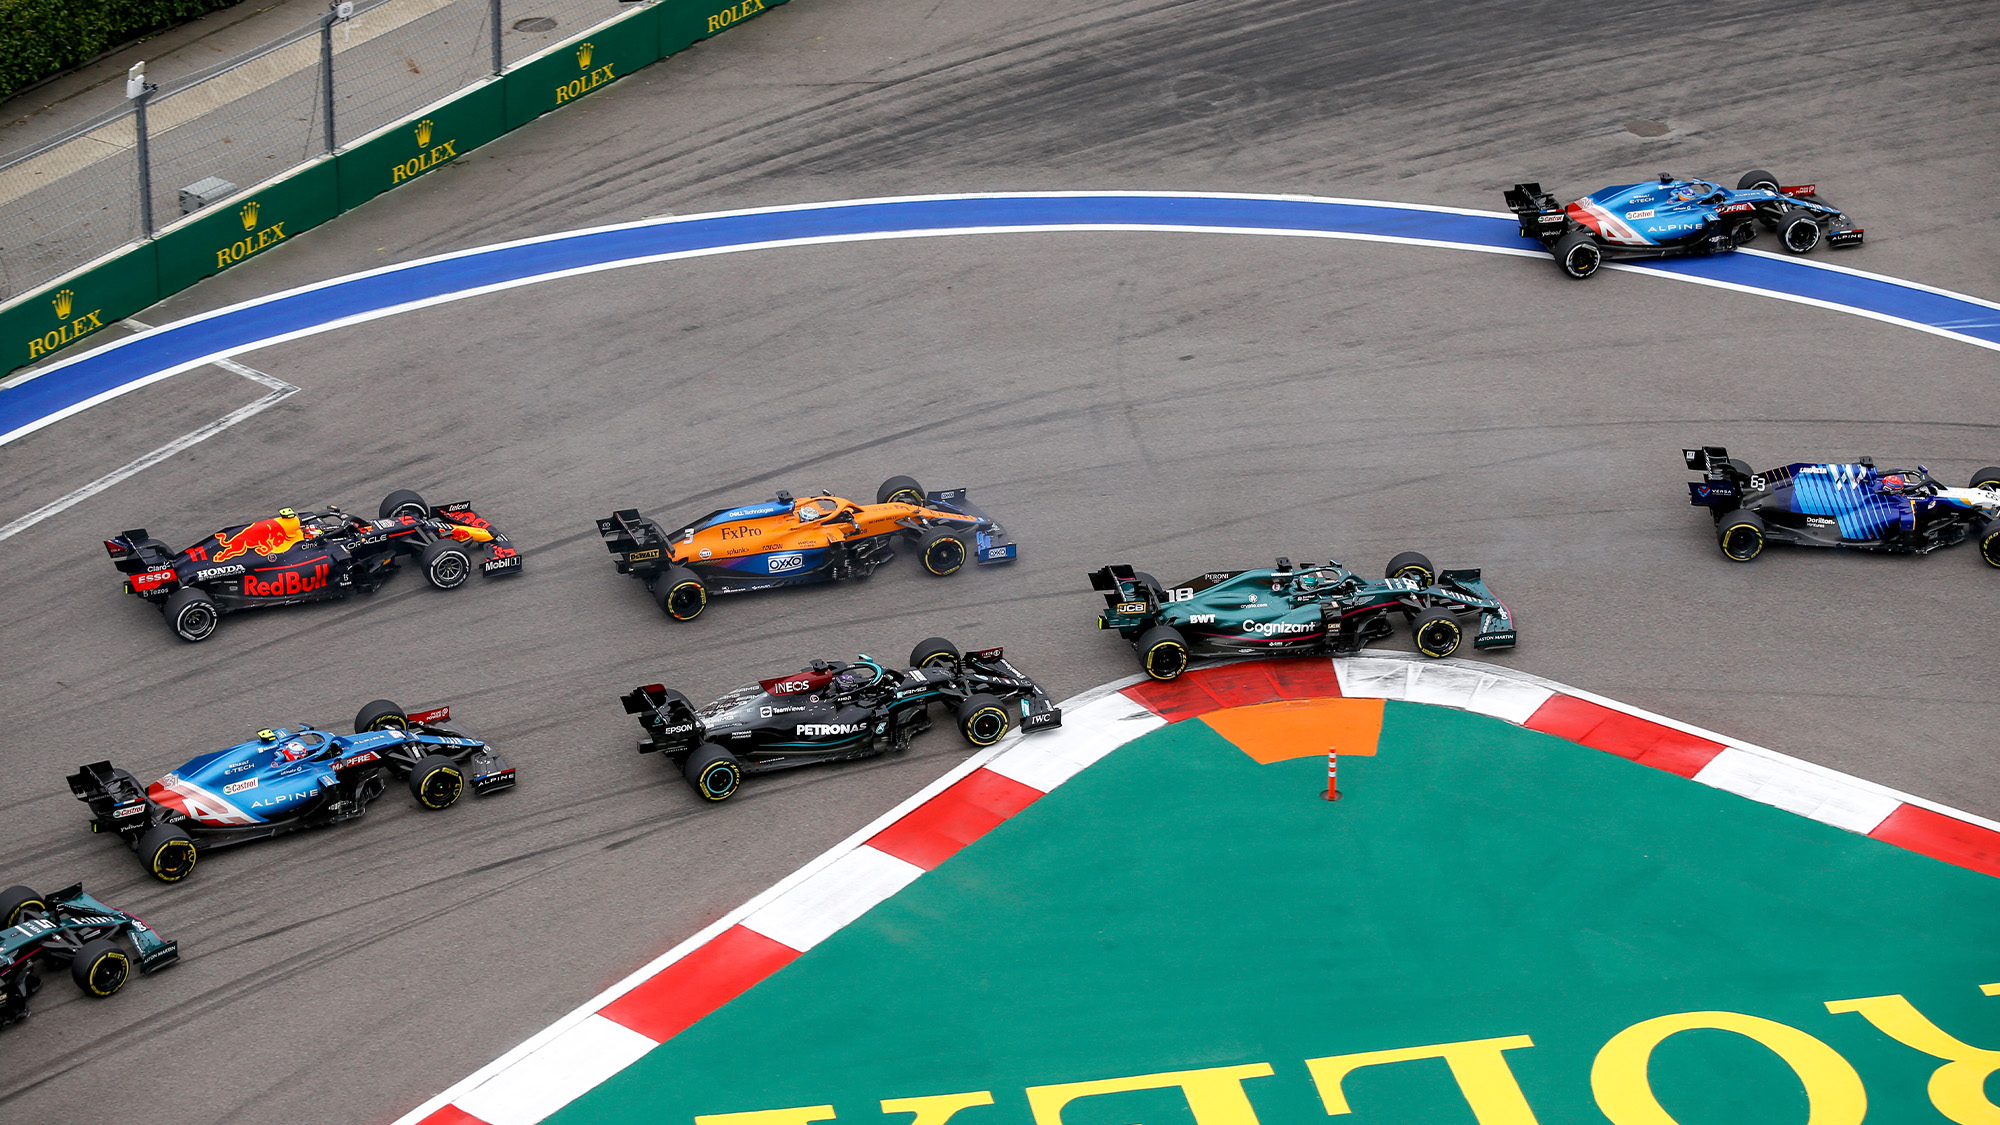 Lewis Hamilton falls back at the start of the 2021 Russian Grand Prix